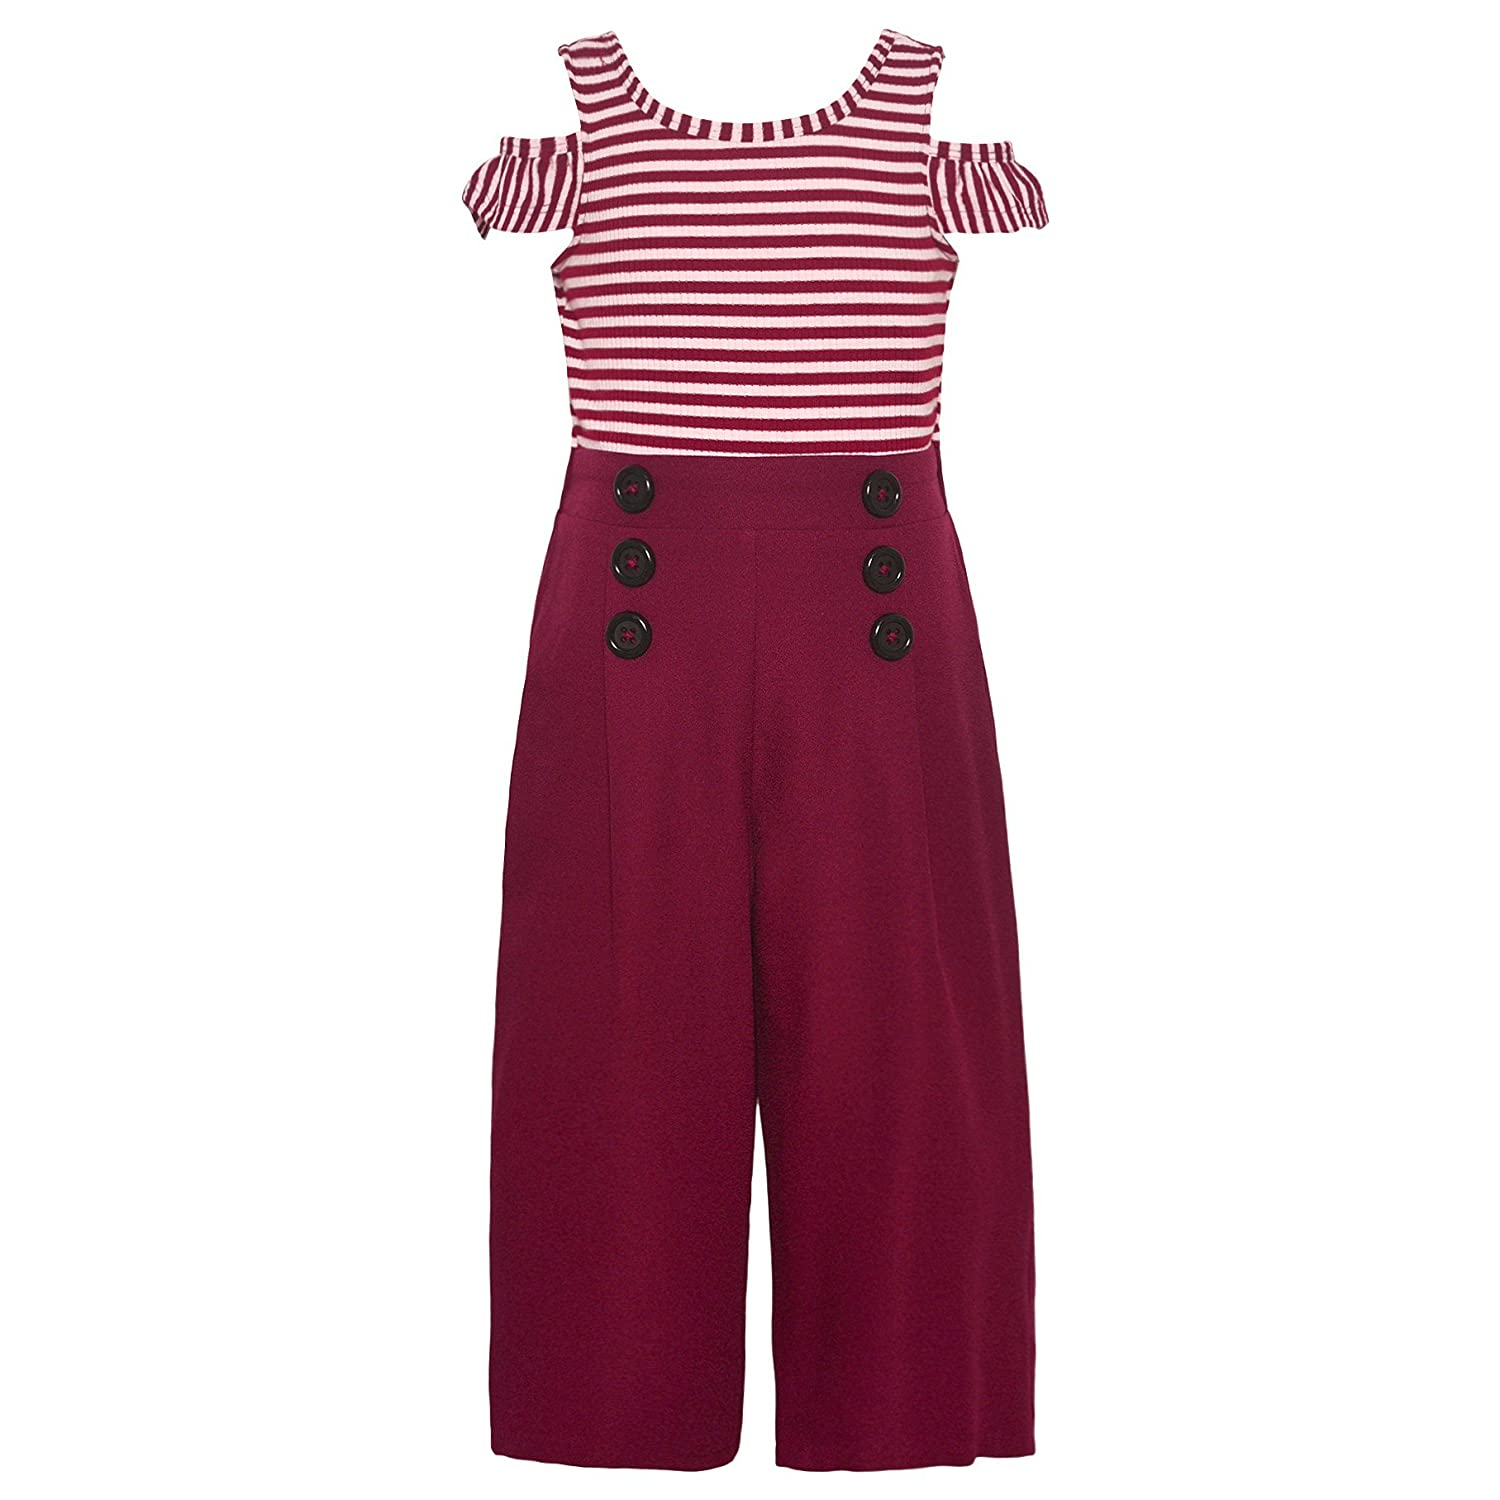 Kids 1950s Clothing & Costumes: Girls, Boys, Toddlers Bonnie Jean Little Girls Burgundy Stripe Cold Shoulder Button Romper 4-6X $25.99 AT vintagedancer.com